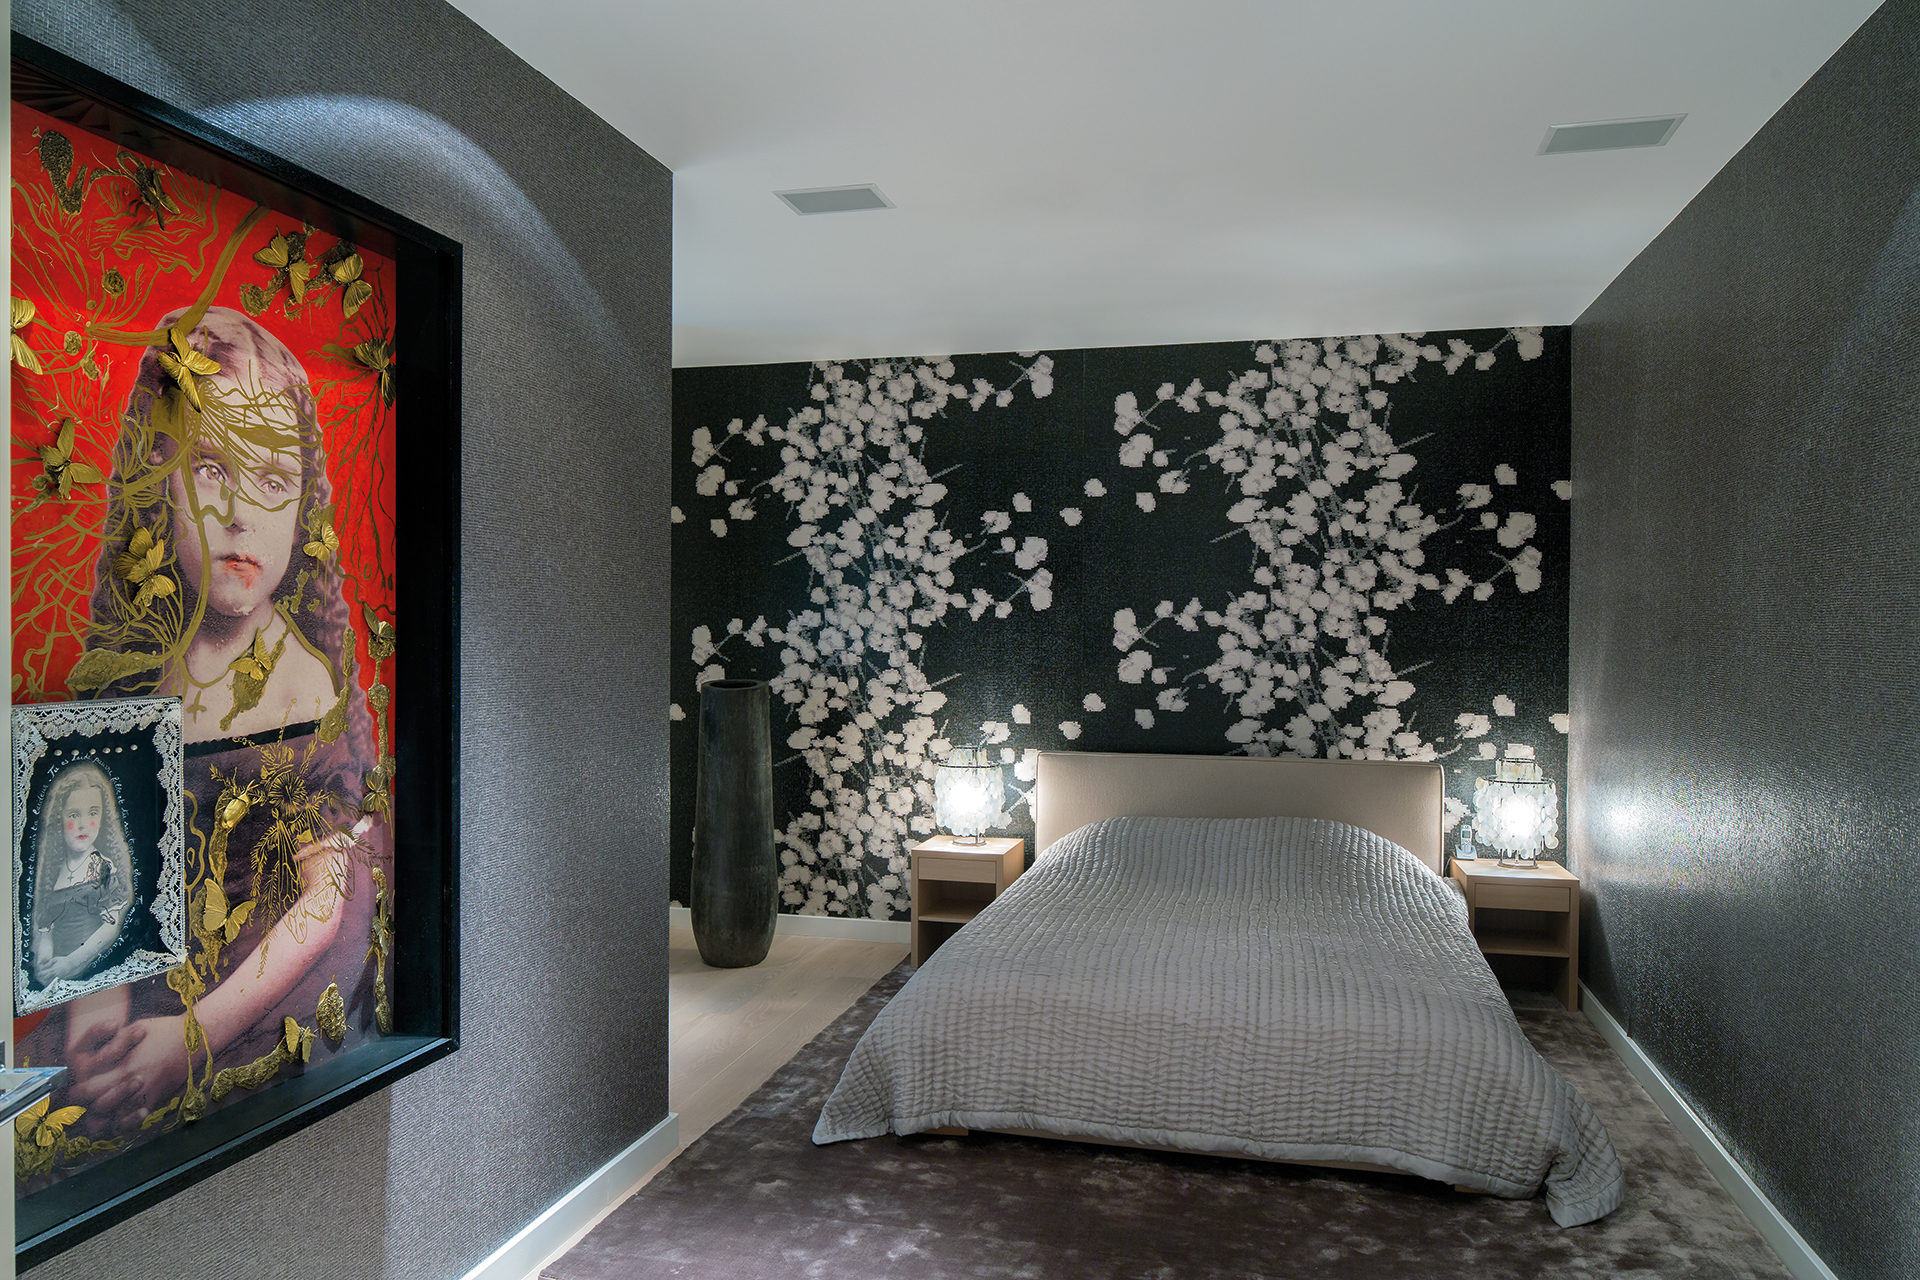 Floral wallpaper covers the walls of this bedroom with a saintly picture of a child